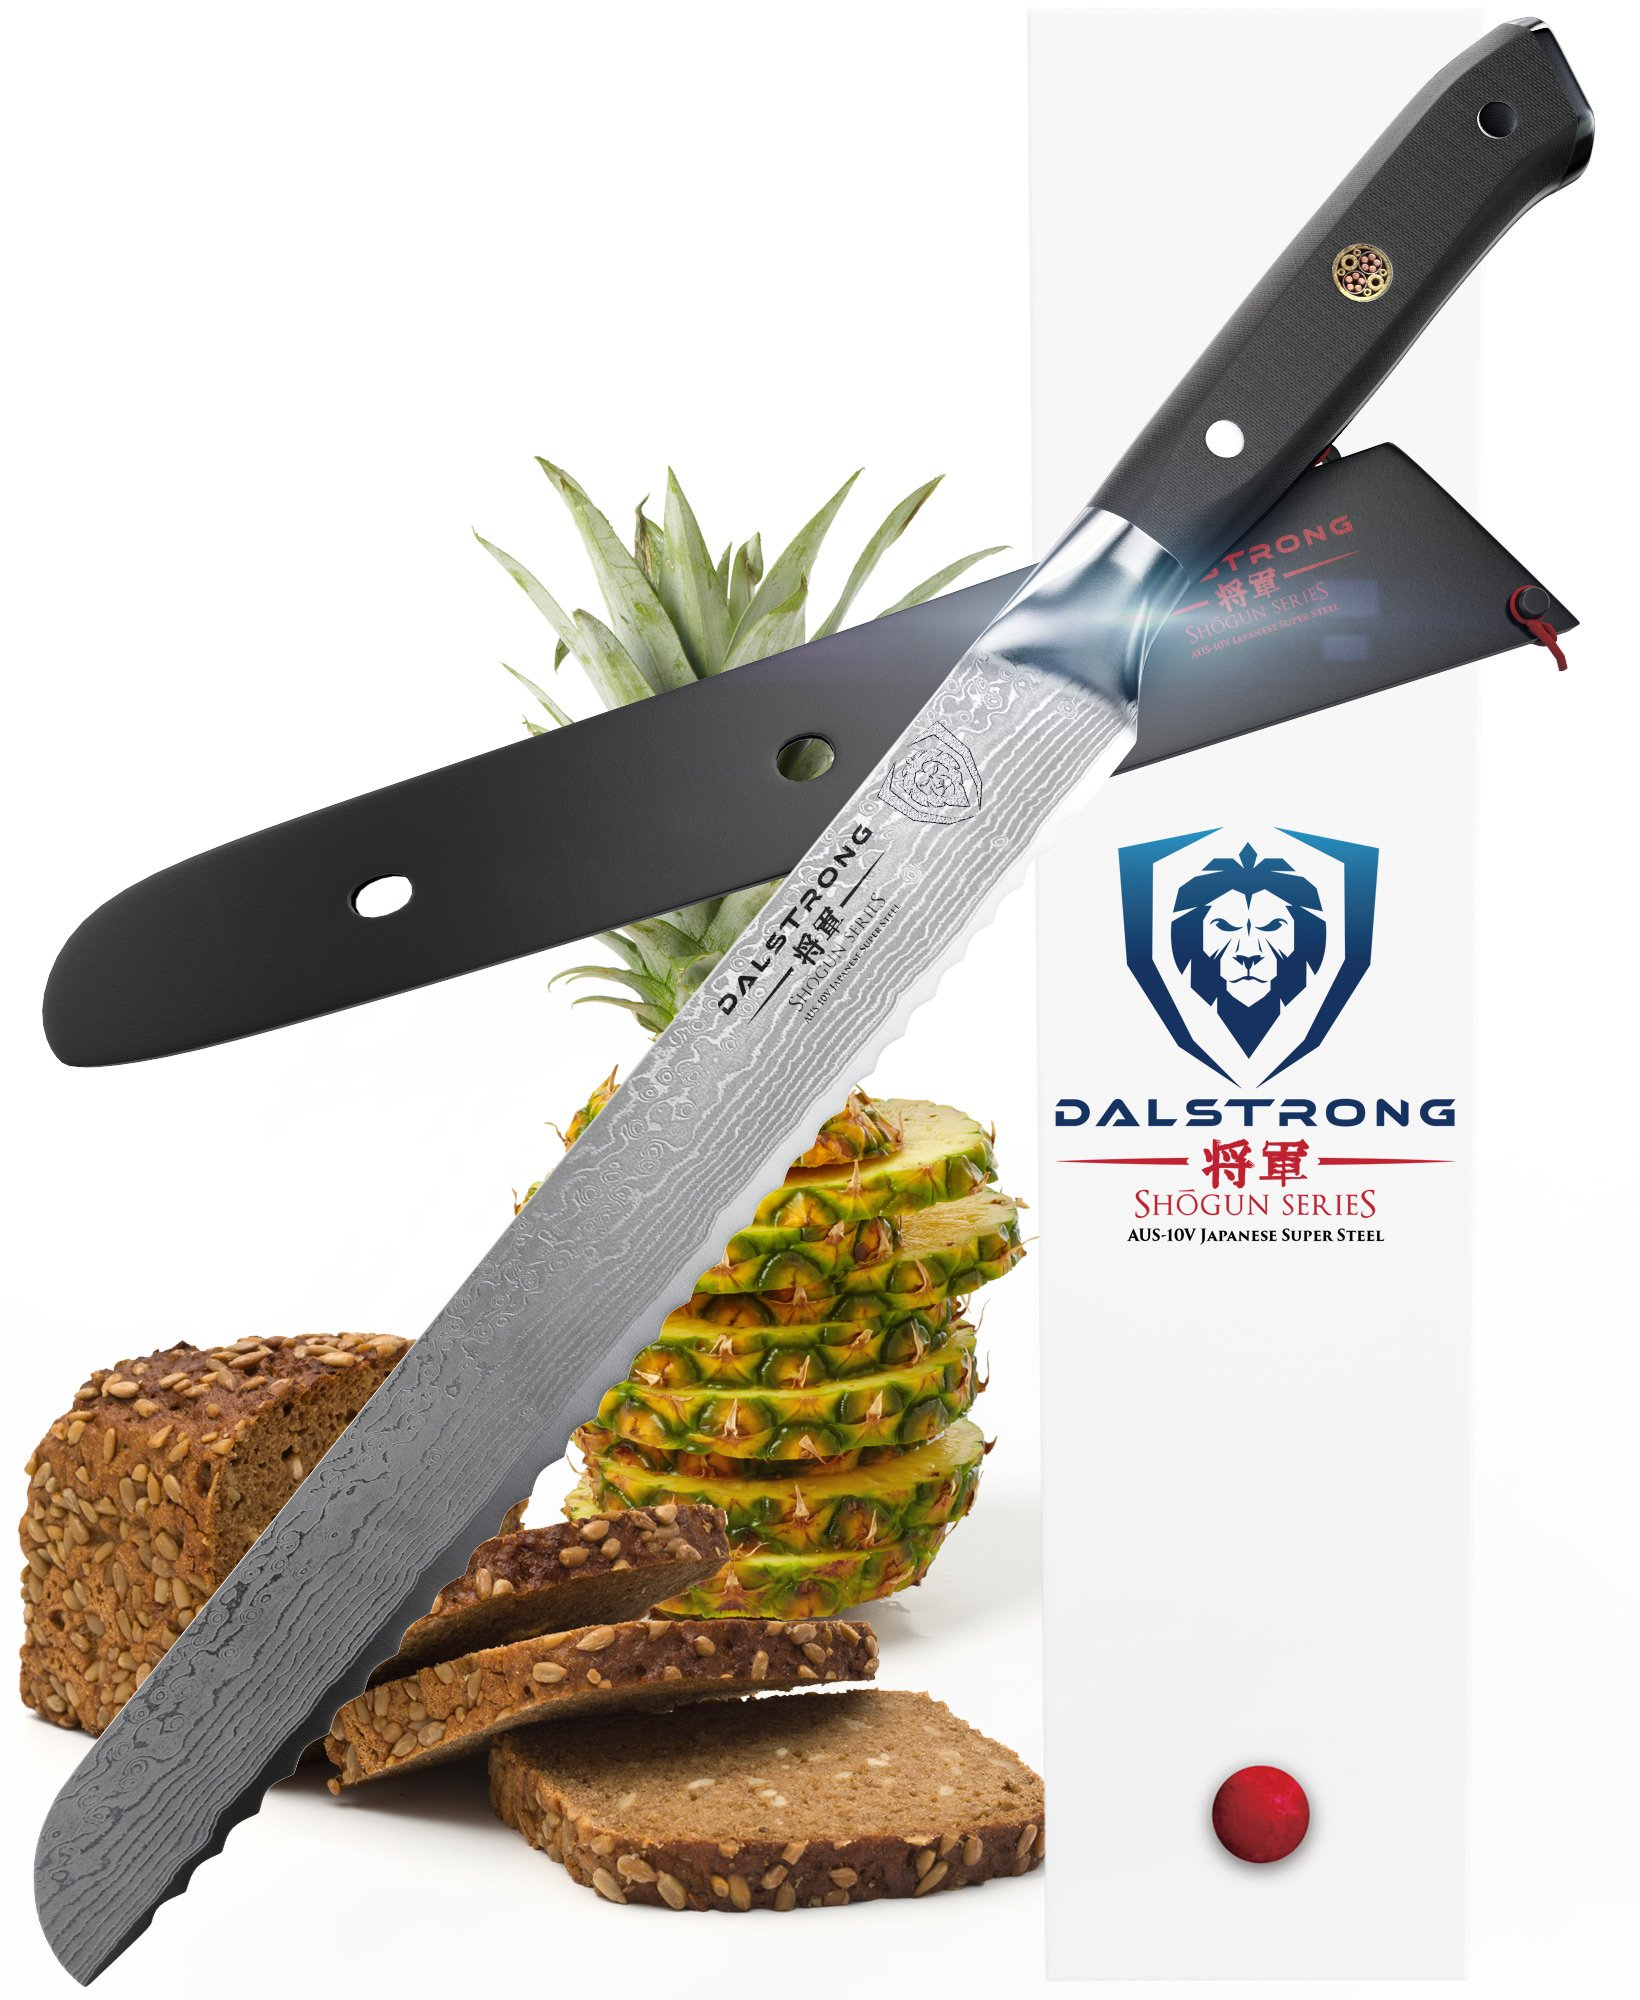 DALSTRONG Bread Knife - Shogun Series - VG10 - 10.25'' (260mm) by Dalstrong